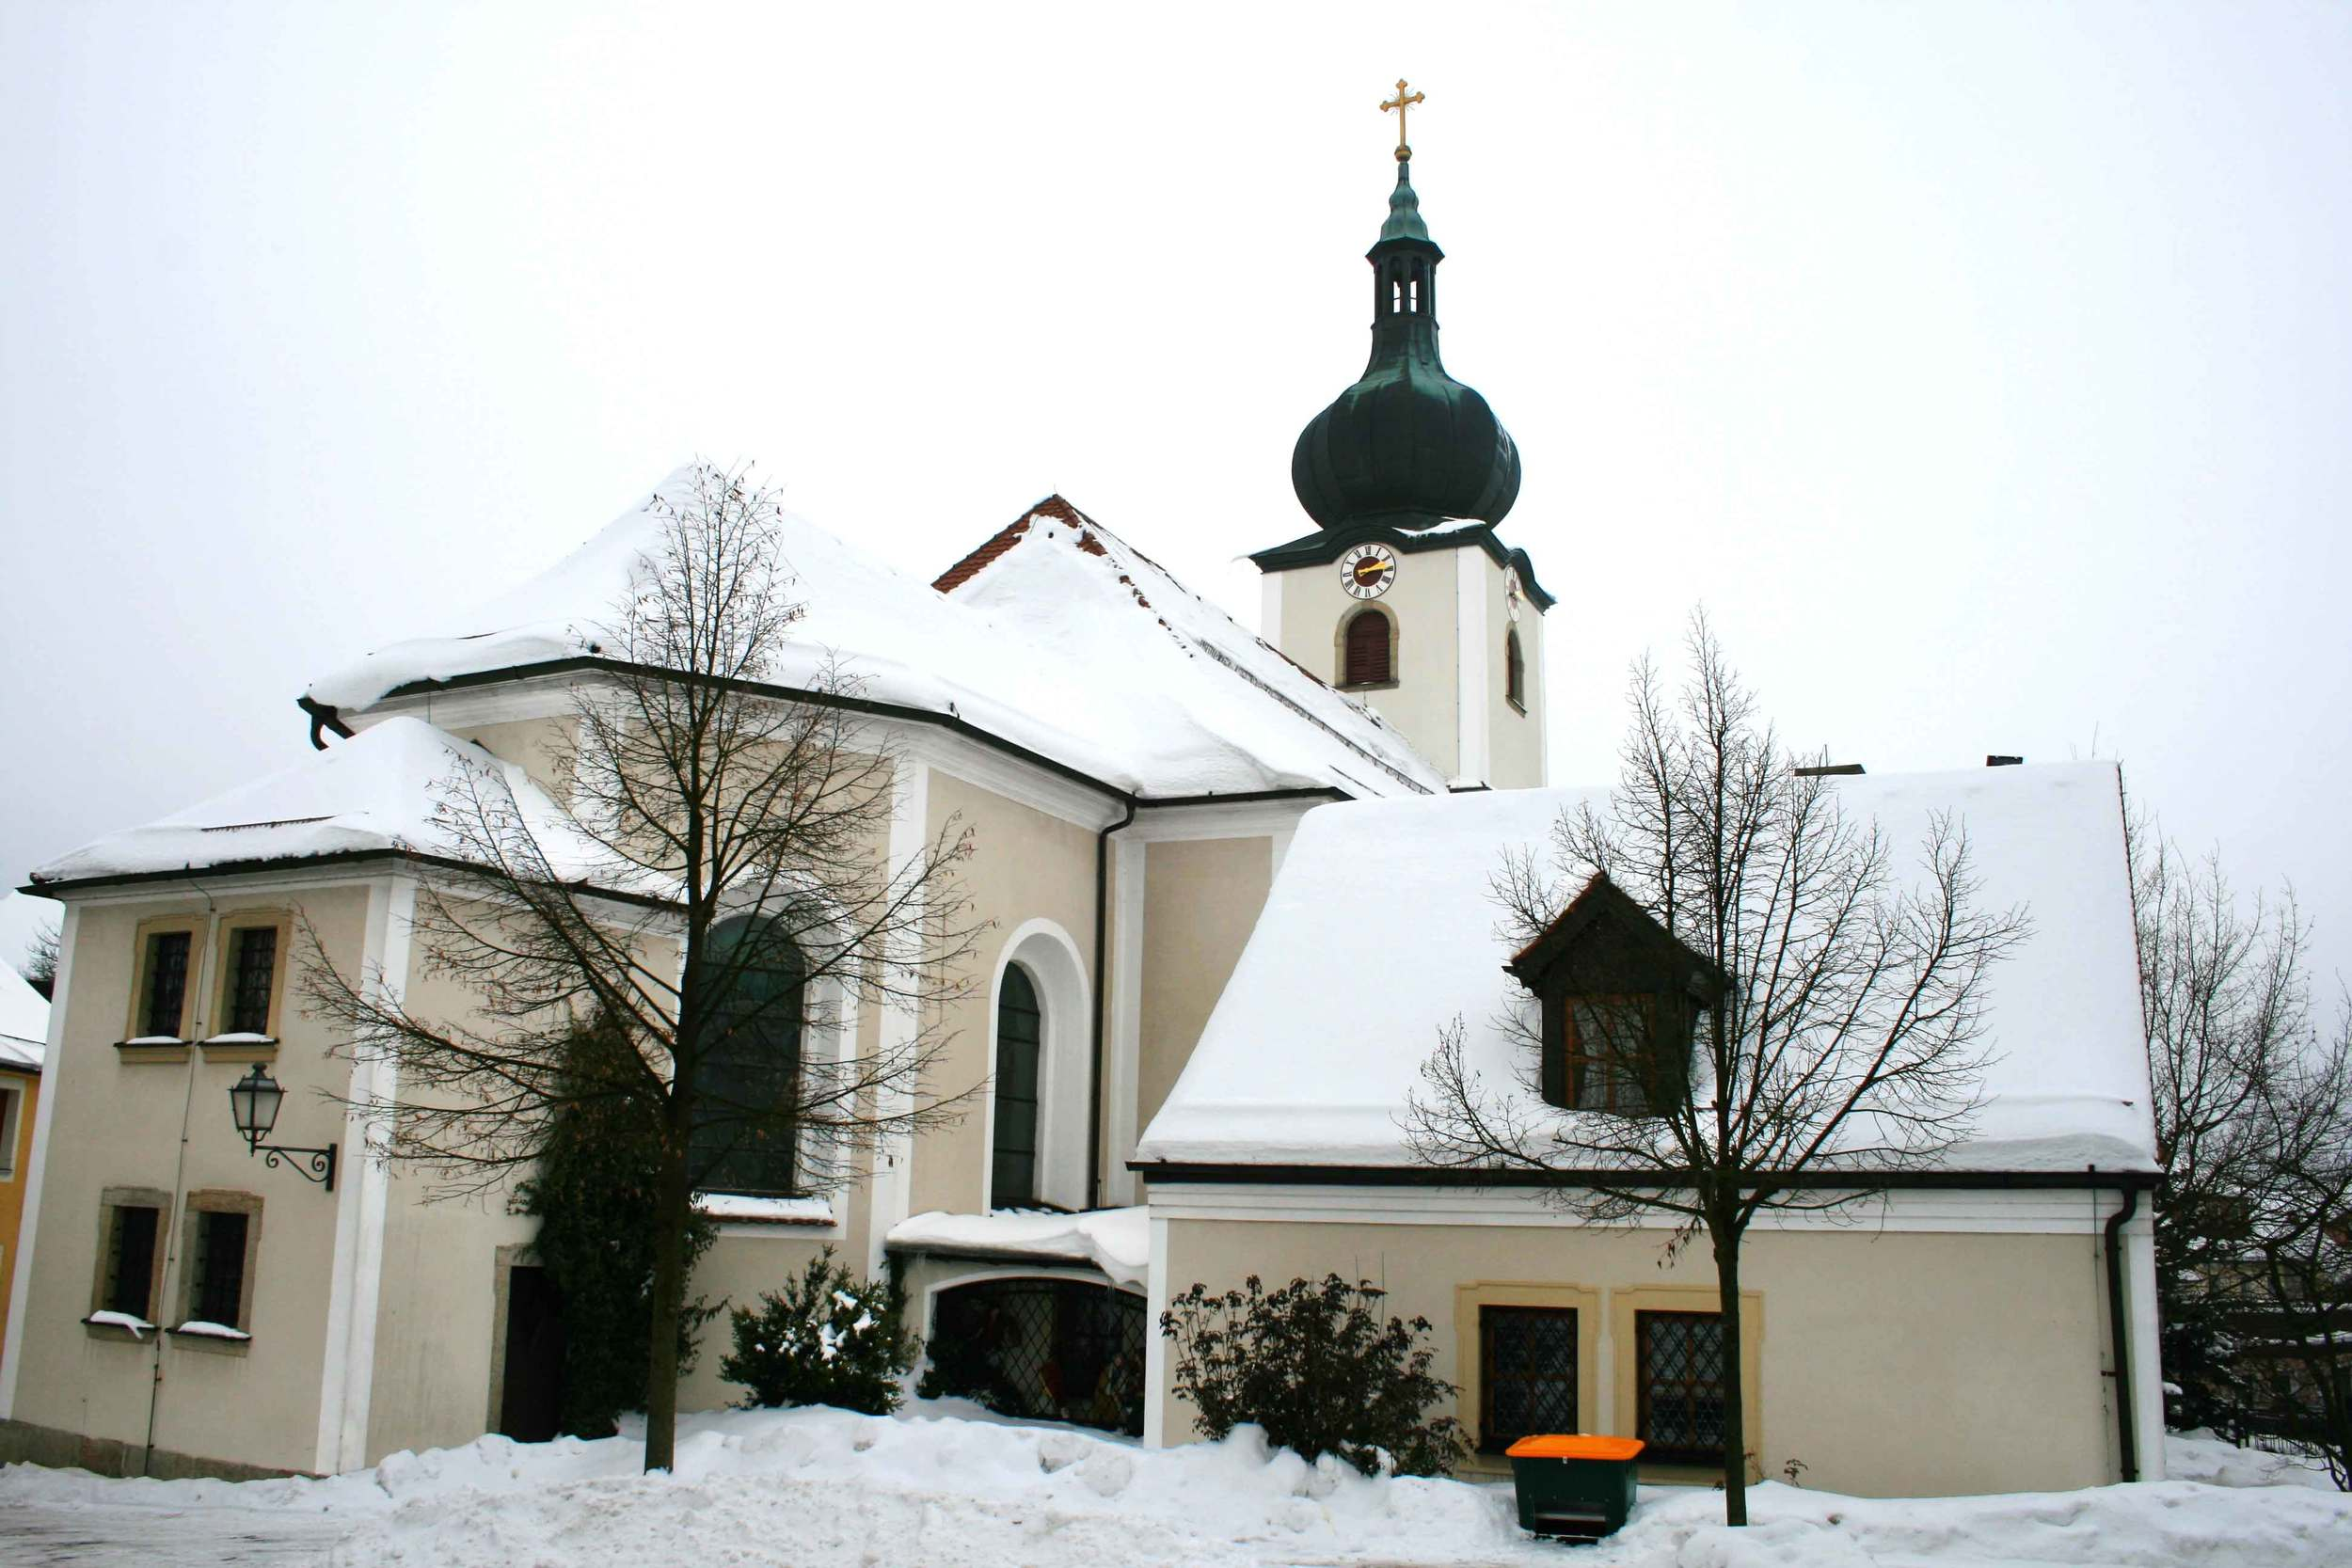 Image©sourcingstyle.com, the church in Konnersreuth where Saint Therese Neumann used to pray, Bavaria, Germany.